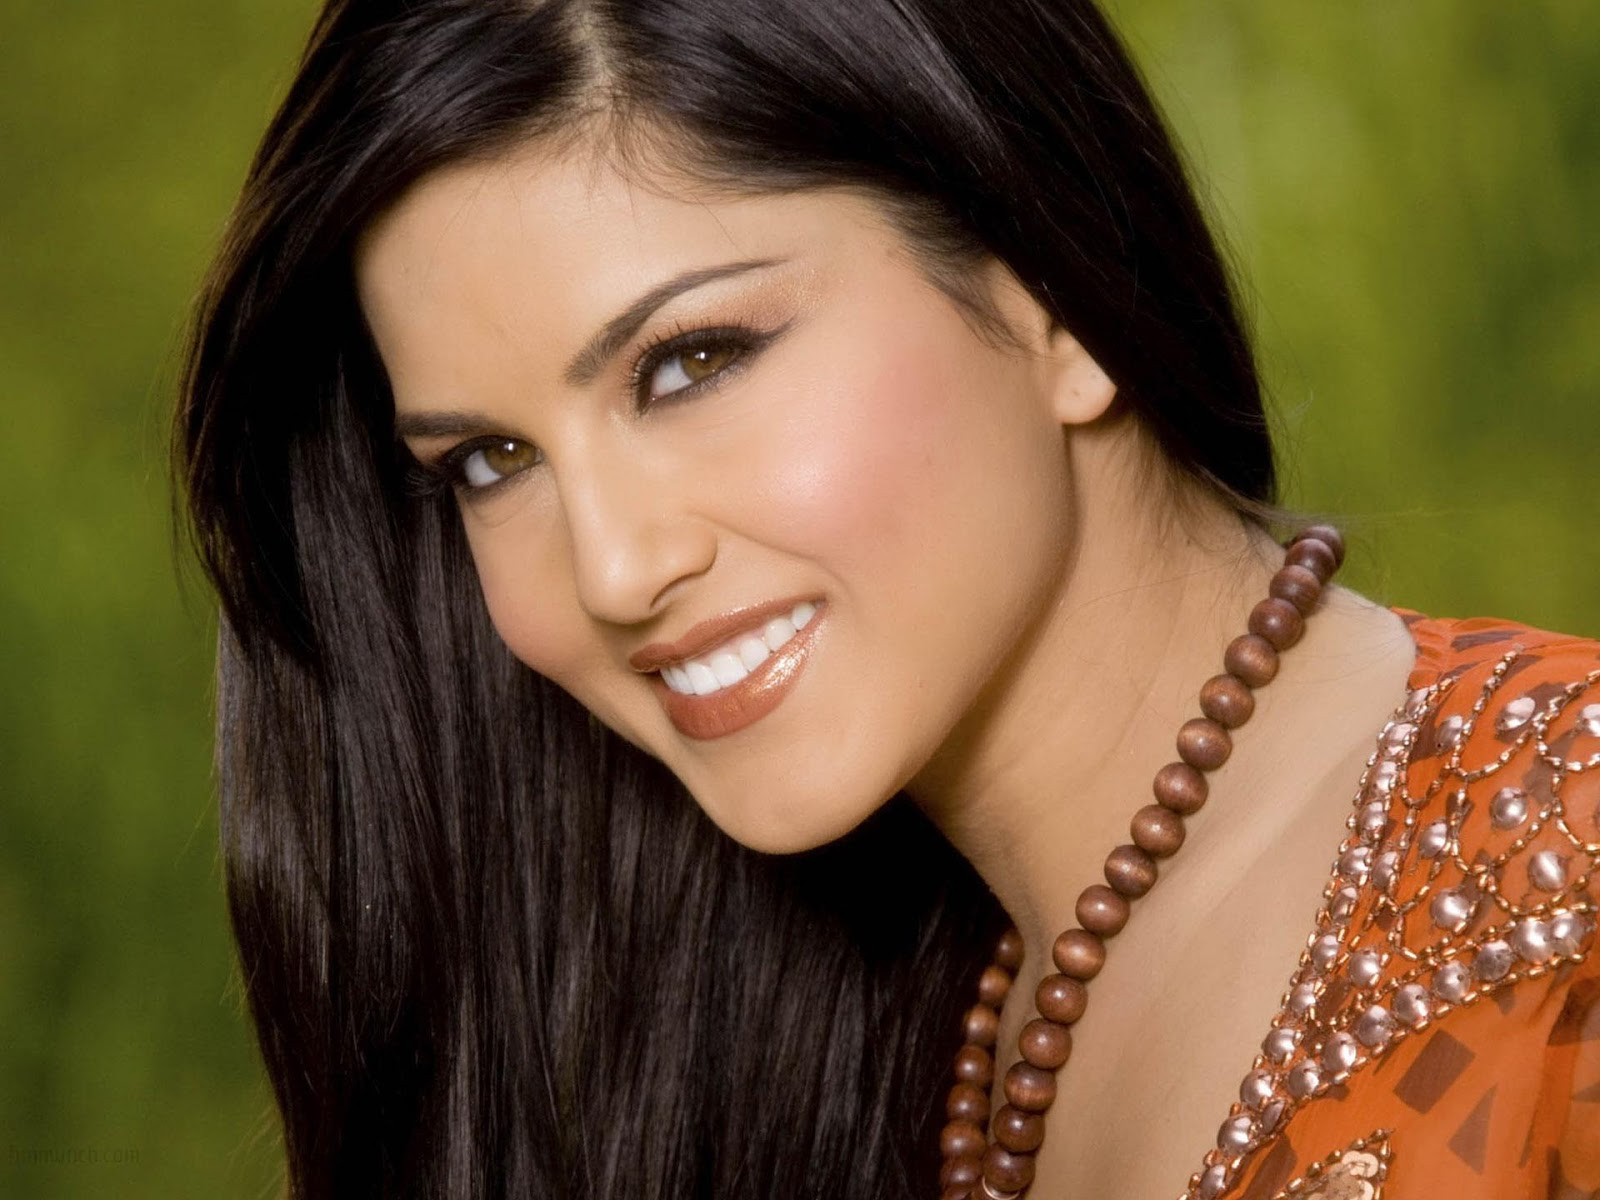 Sunny Leone Wallpapers As A Bollywood Actress Sunny Leone -5103